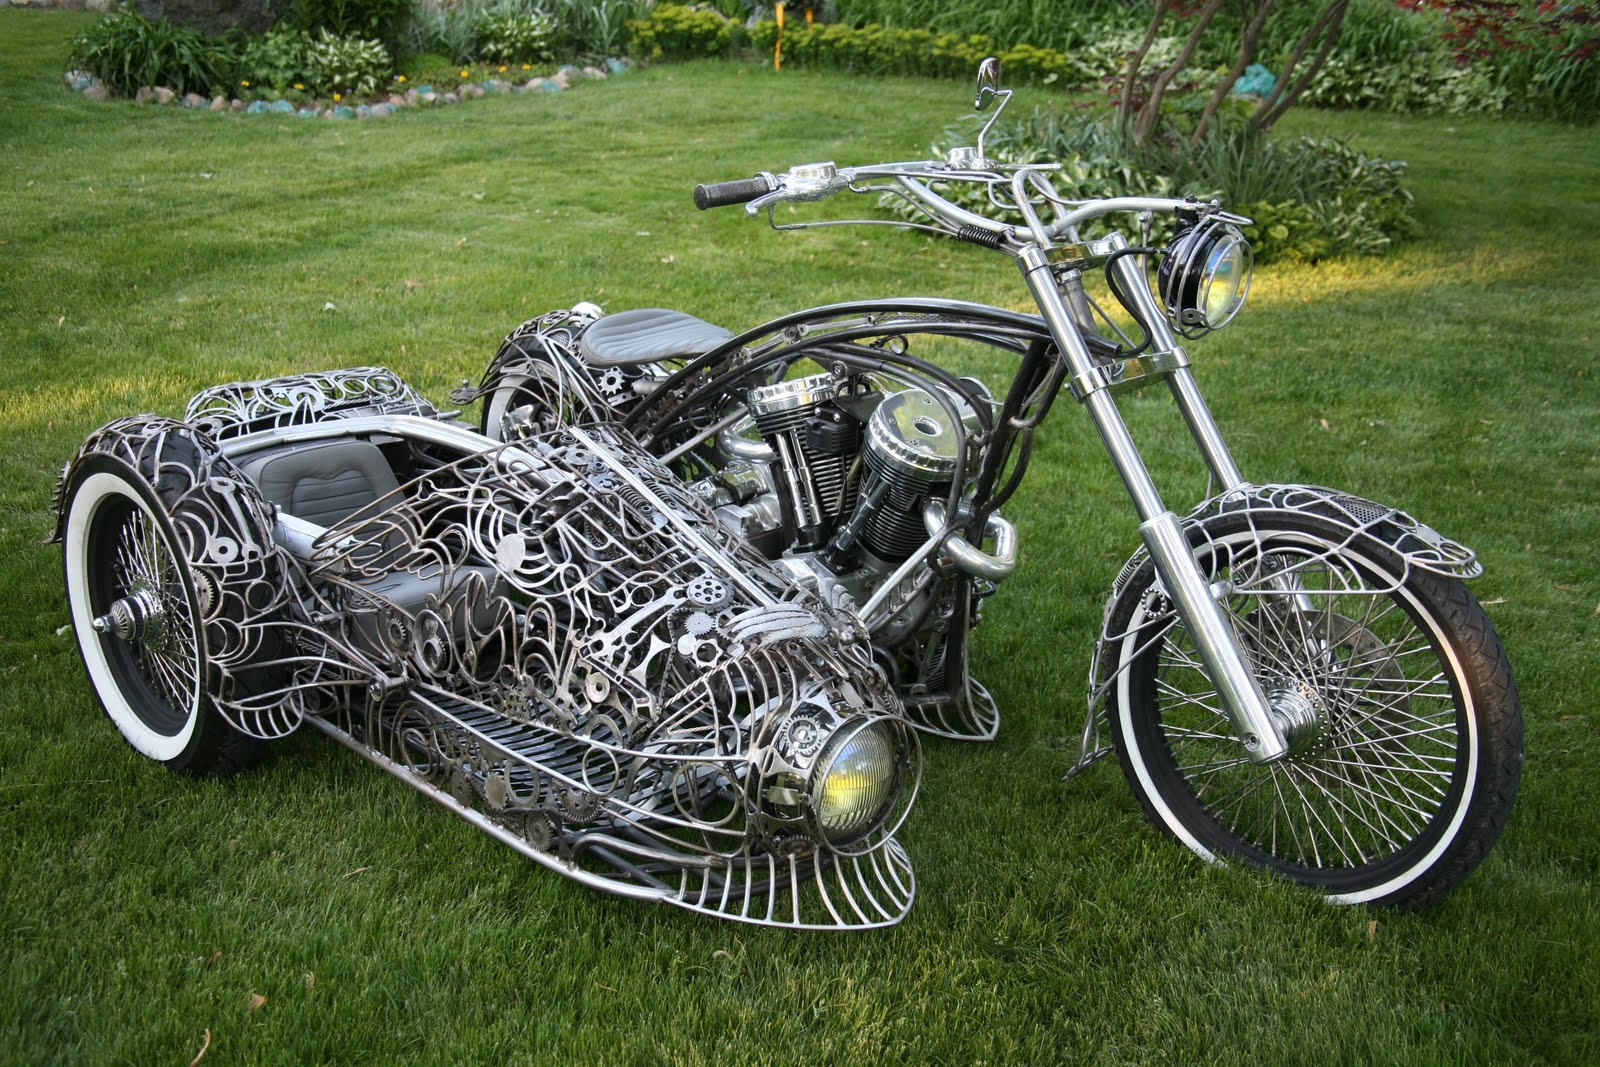 sidecar motorcycle custom bike steampunk bicycle motorcycles ron side finch bikes amazing sidecars tendencies most sherry cars artist latest chopper